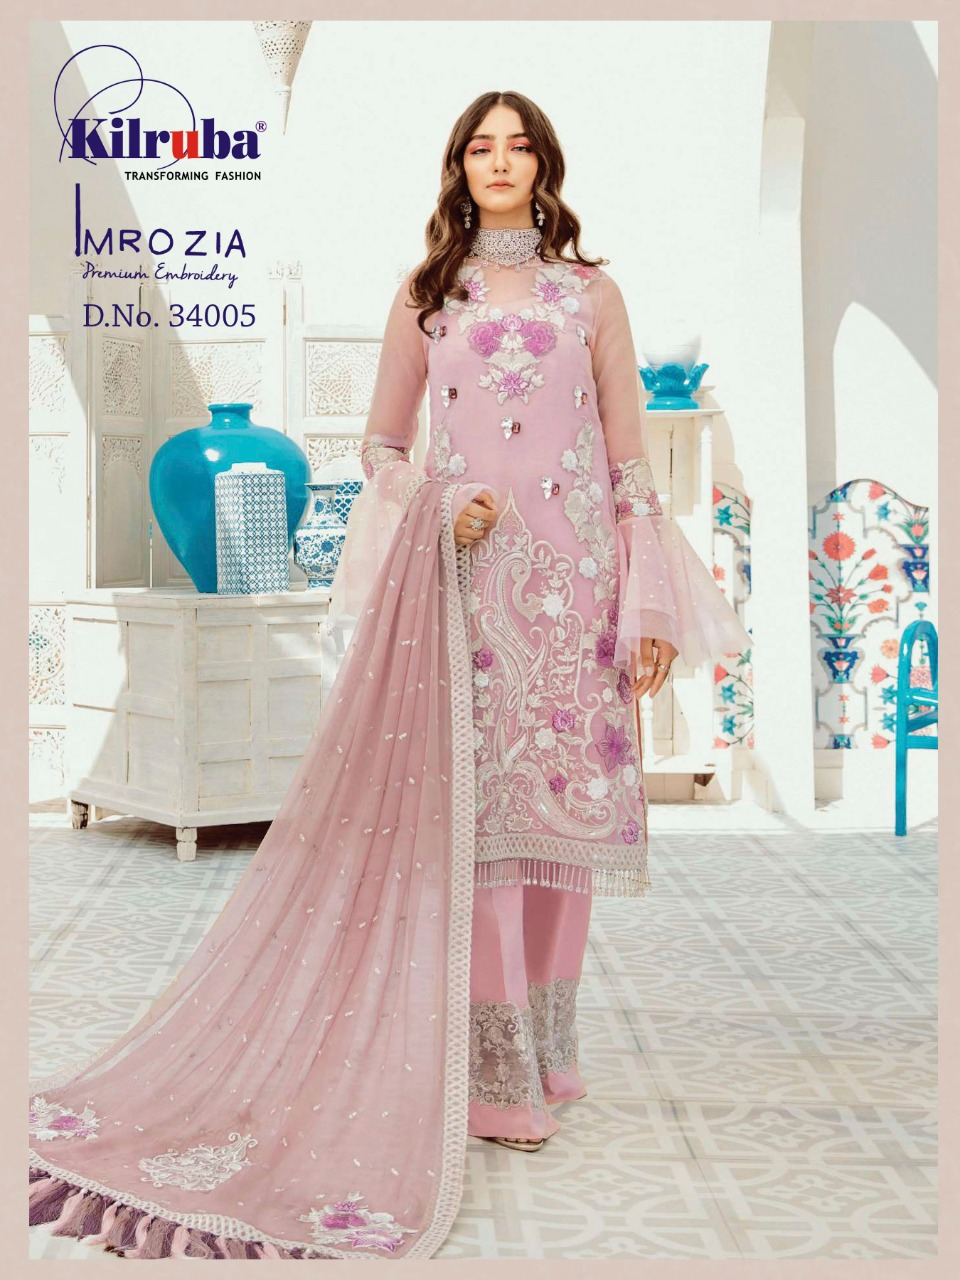 Kilruba Imrozia Pure Georgette With Embroidered Pakistani Suit Catalog at Wholesale rate